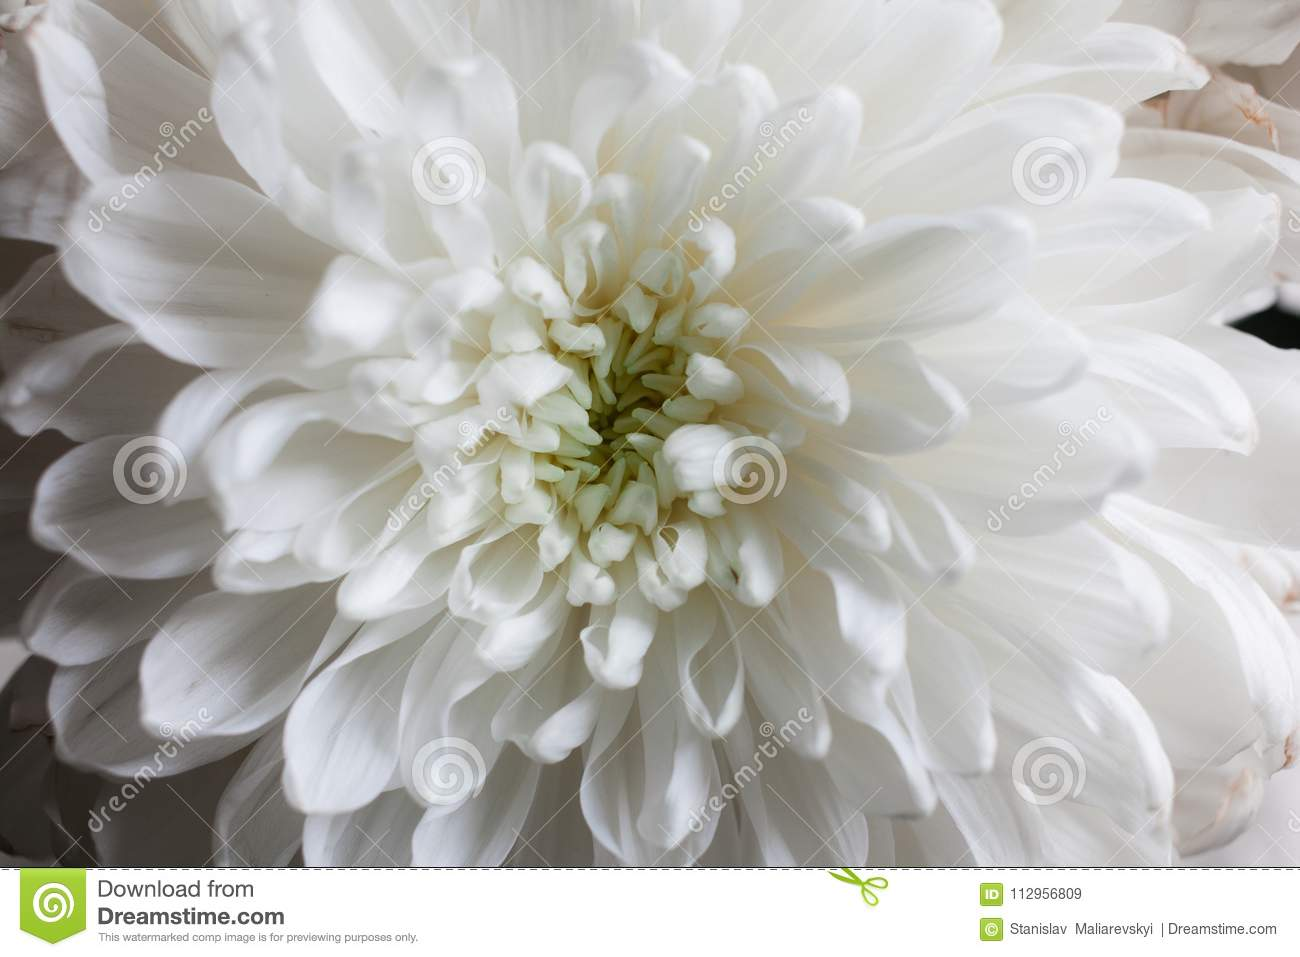 White chrysanthemum as background the white chrysanthemum flower white chrysanthemum as background the white chrysanthemum flower closeup macro white flower close up beautiful bouquet with chrysanthemum background mightylinksfo